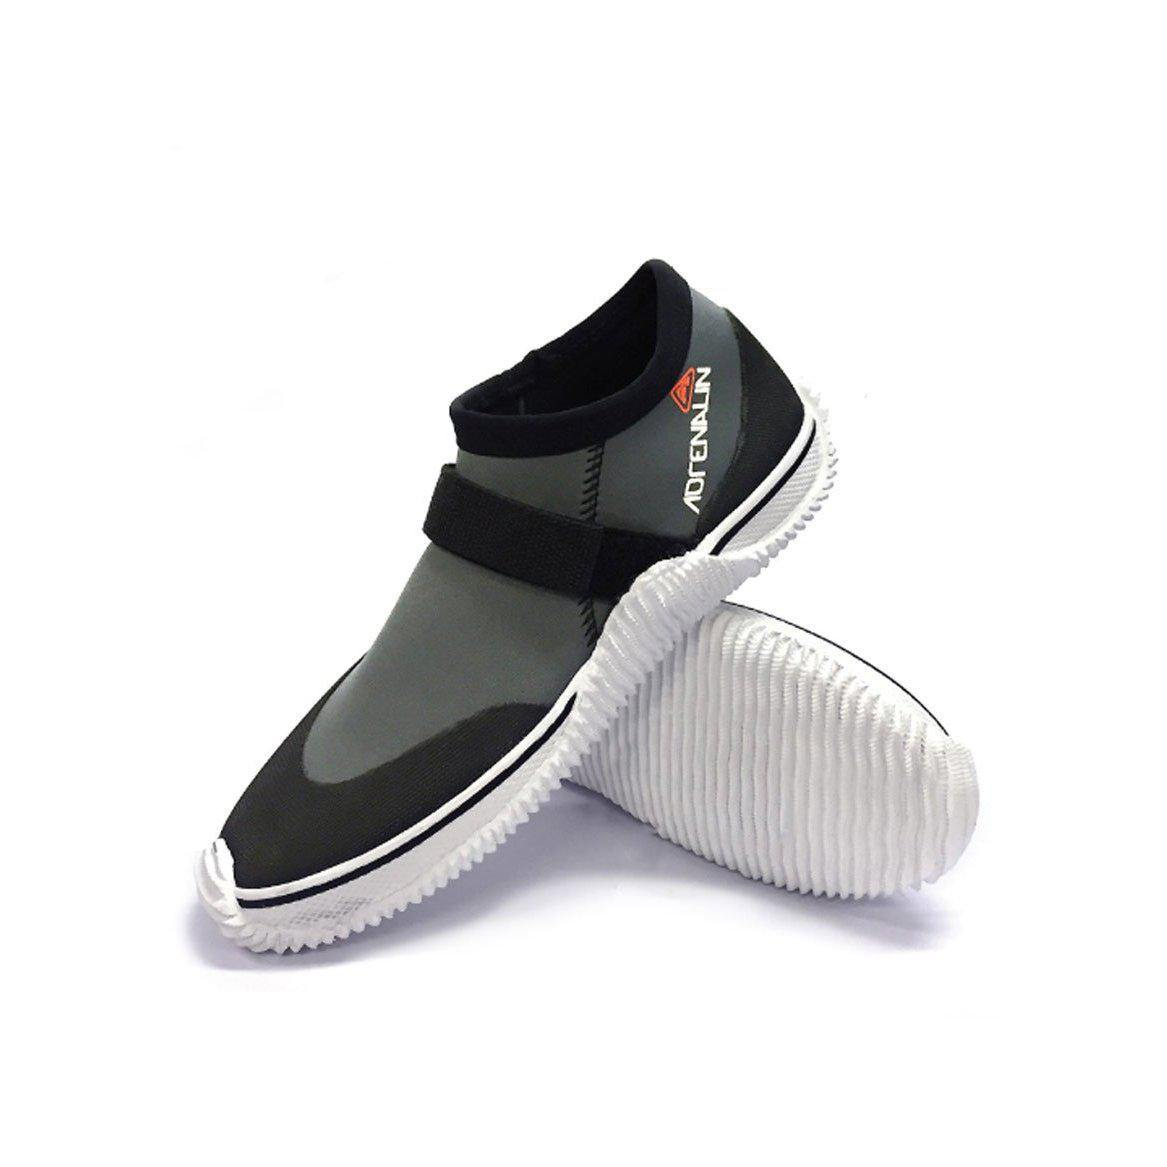 Adrenalin Boatie Neoprene Sneaker-Addict Tackle